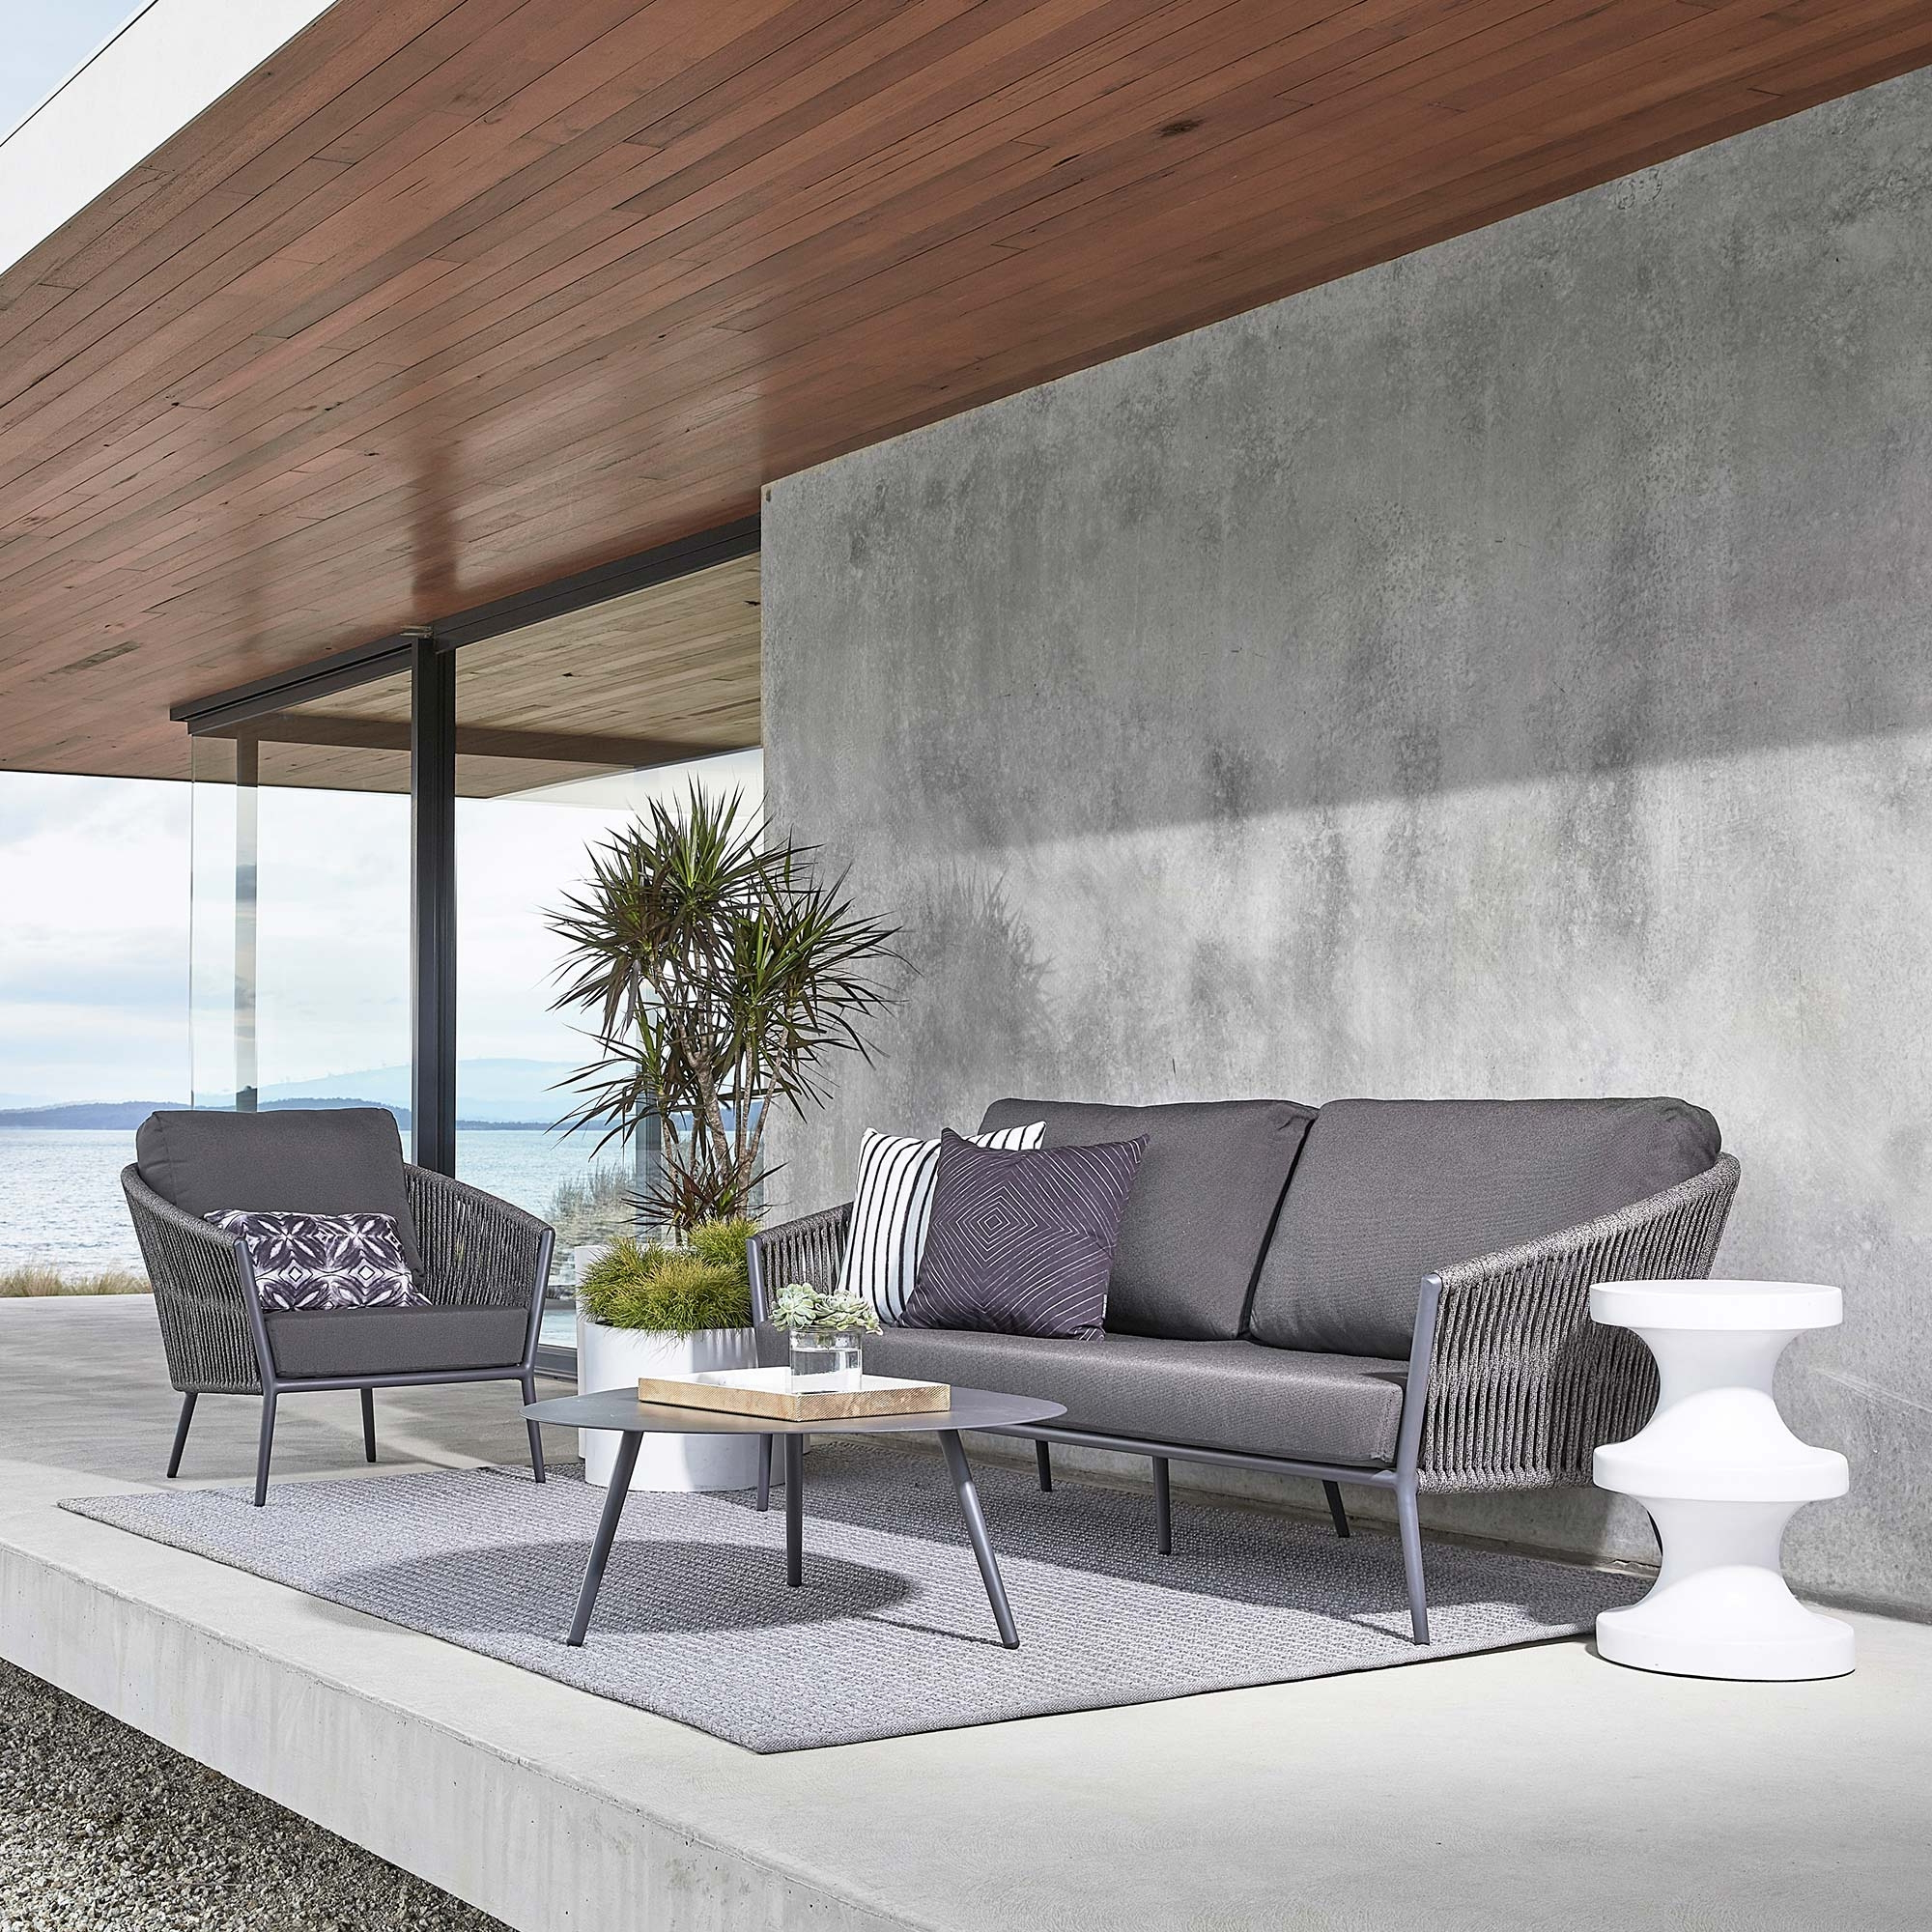 2020 Catalina Outdoor Sofa With Catalina Outdoor Sofas With Cushions (View 10 of 11)